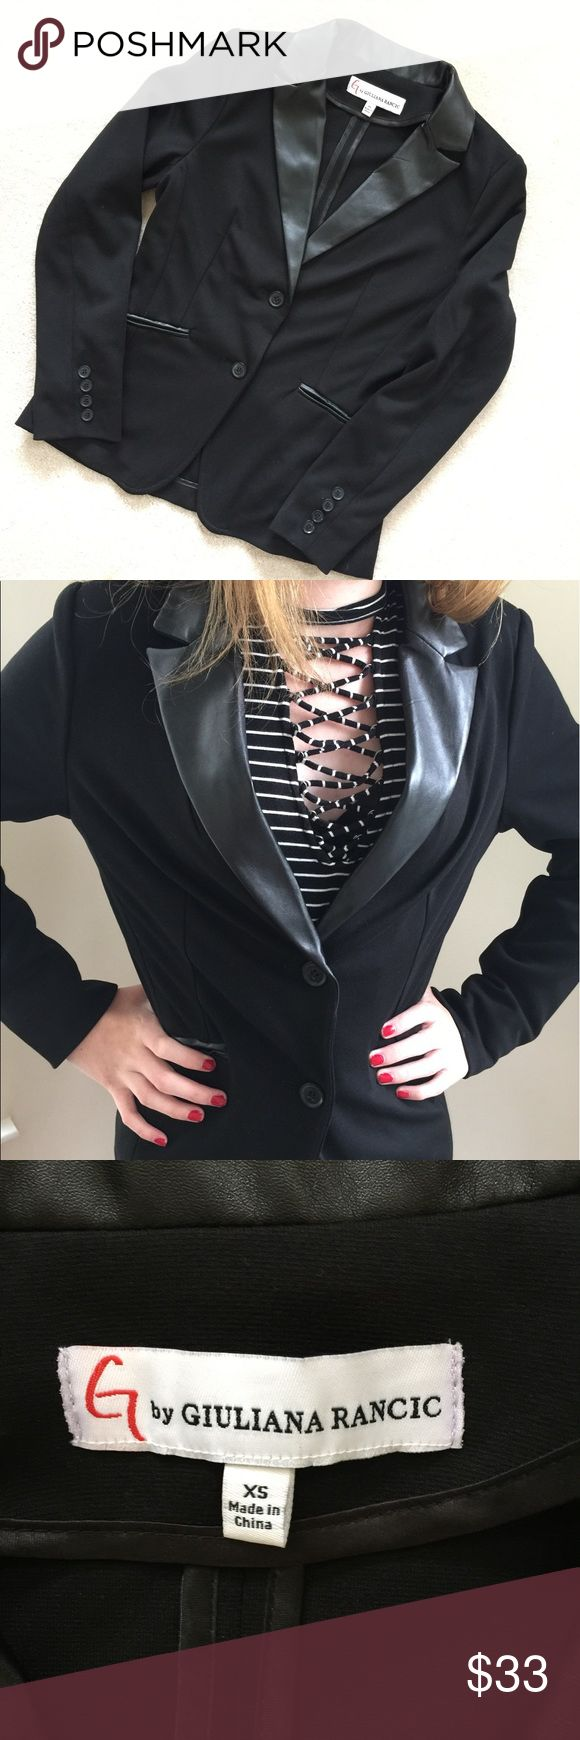 G by Giuliana Rancic leather trim blazer/jacket Like new condition! Beautiful blazer with leather trim collar and pockets. Great for a night out or work. G by Giuliana Rancic Jackets & Coats Blazers